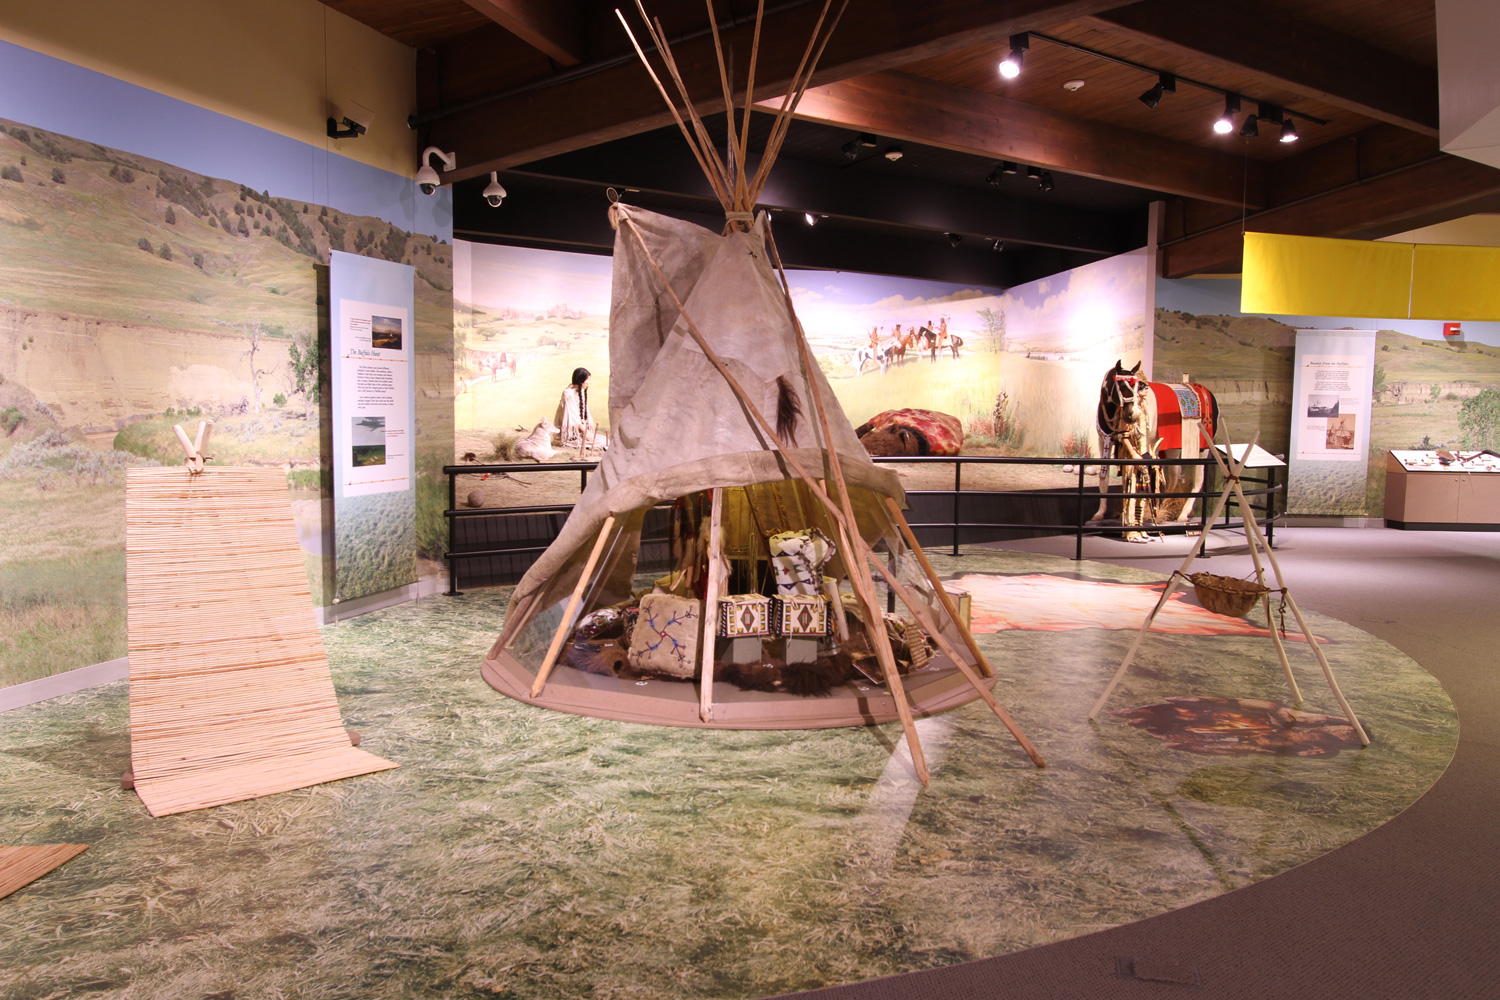 The Akta Lakota Museum & Cultural Center on St. Joseph's campus is free and open to the public.